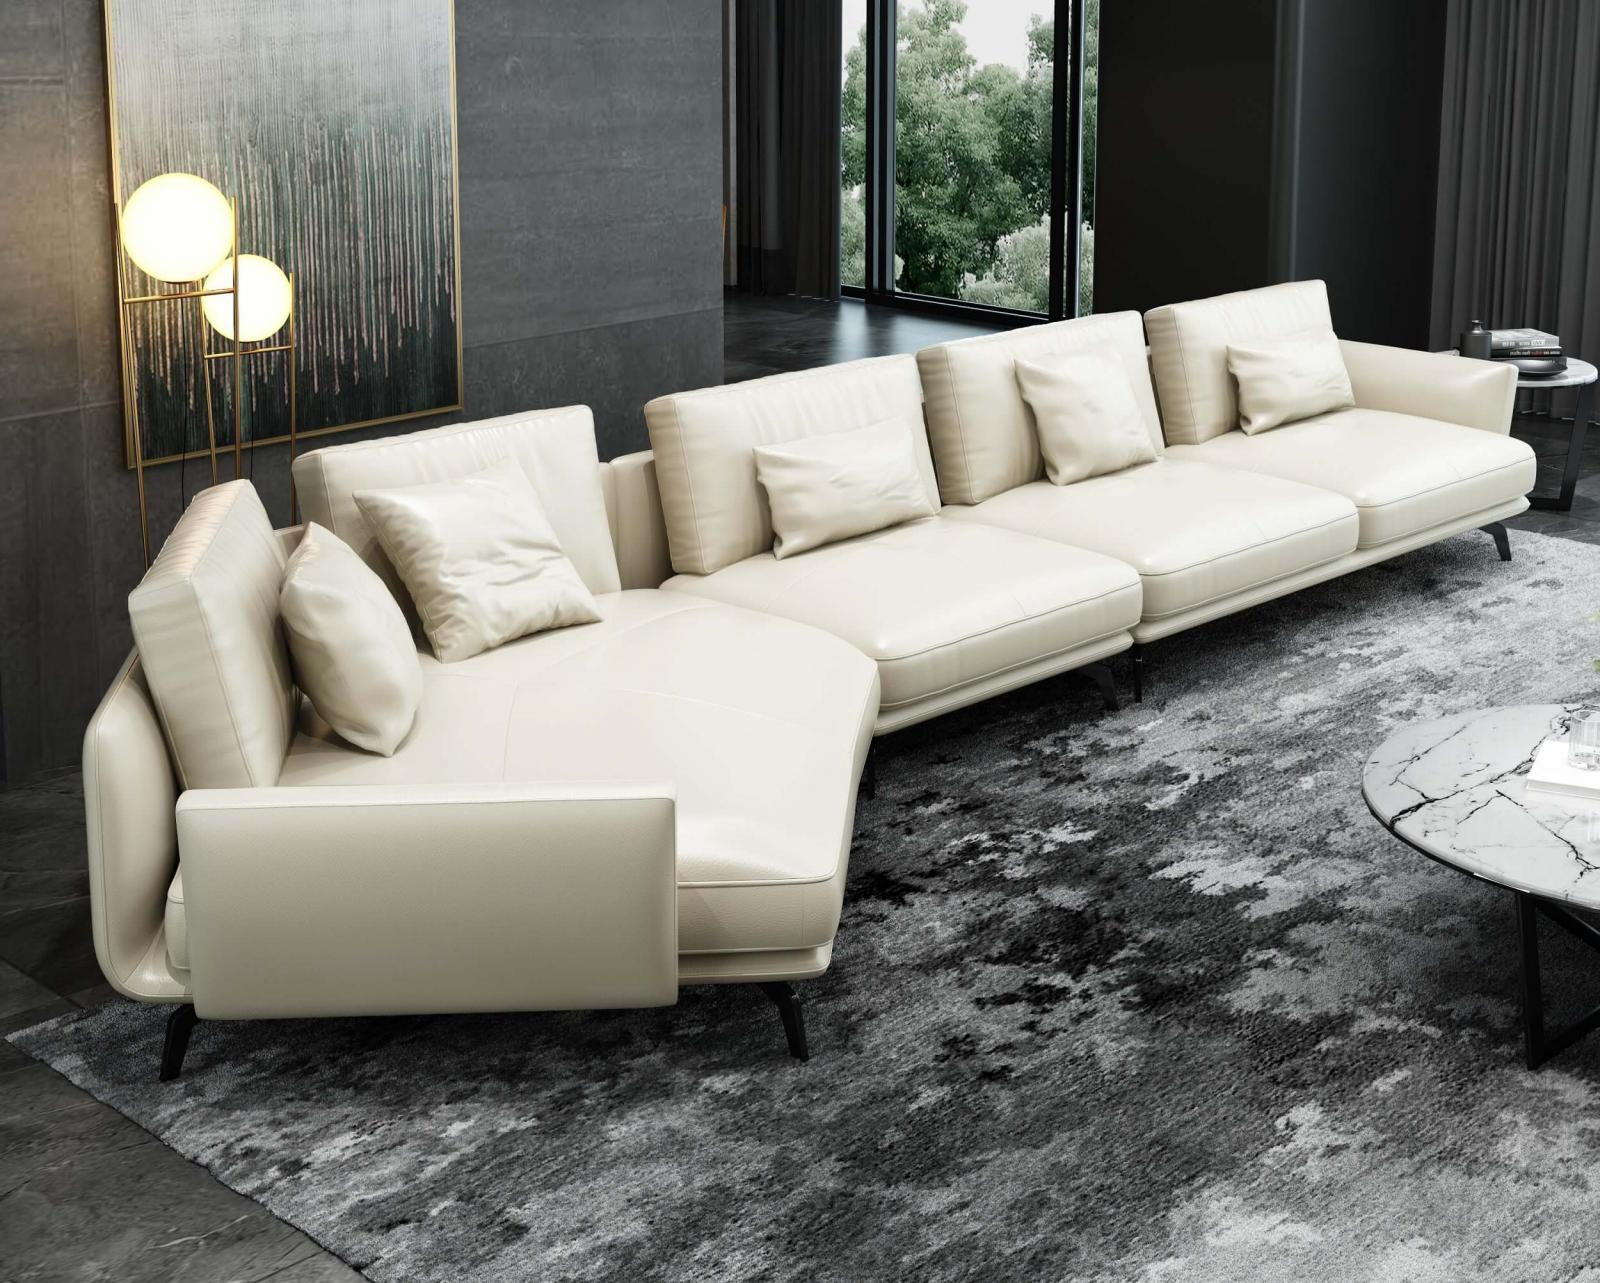 Modern  Vintage Off-White Wood  Genuine leather  Solid Hardwood and Italian Leather Sectional Sofa EUROPEAN FURNITURE EF-54436L-3LHC